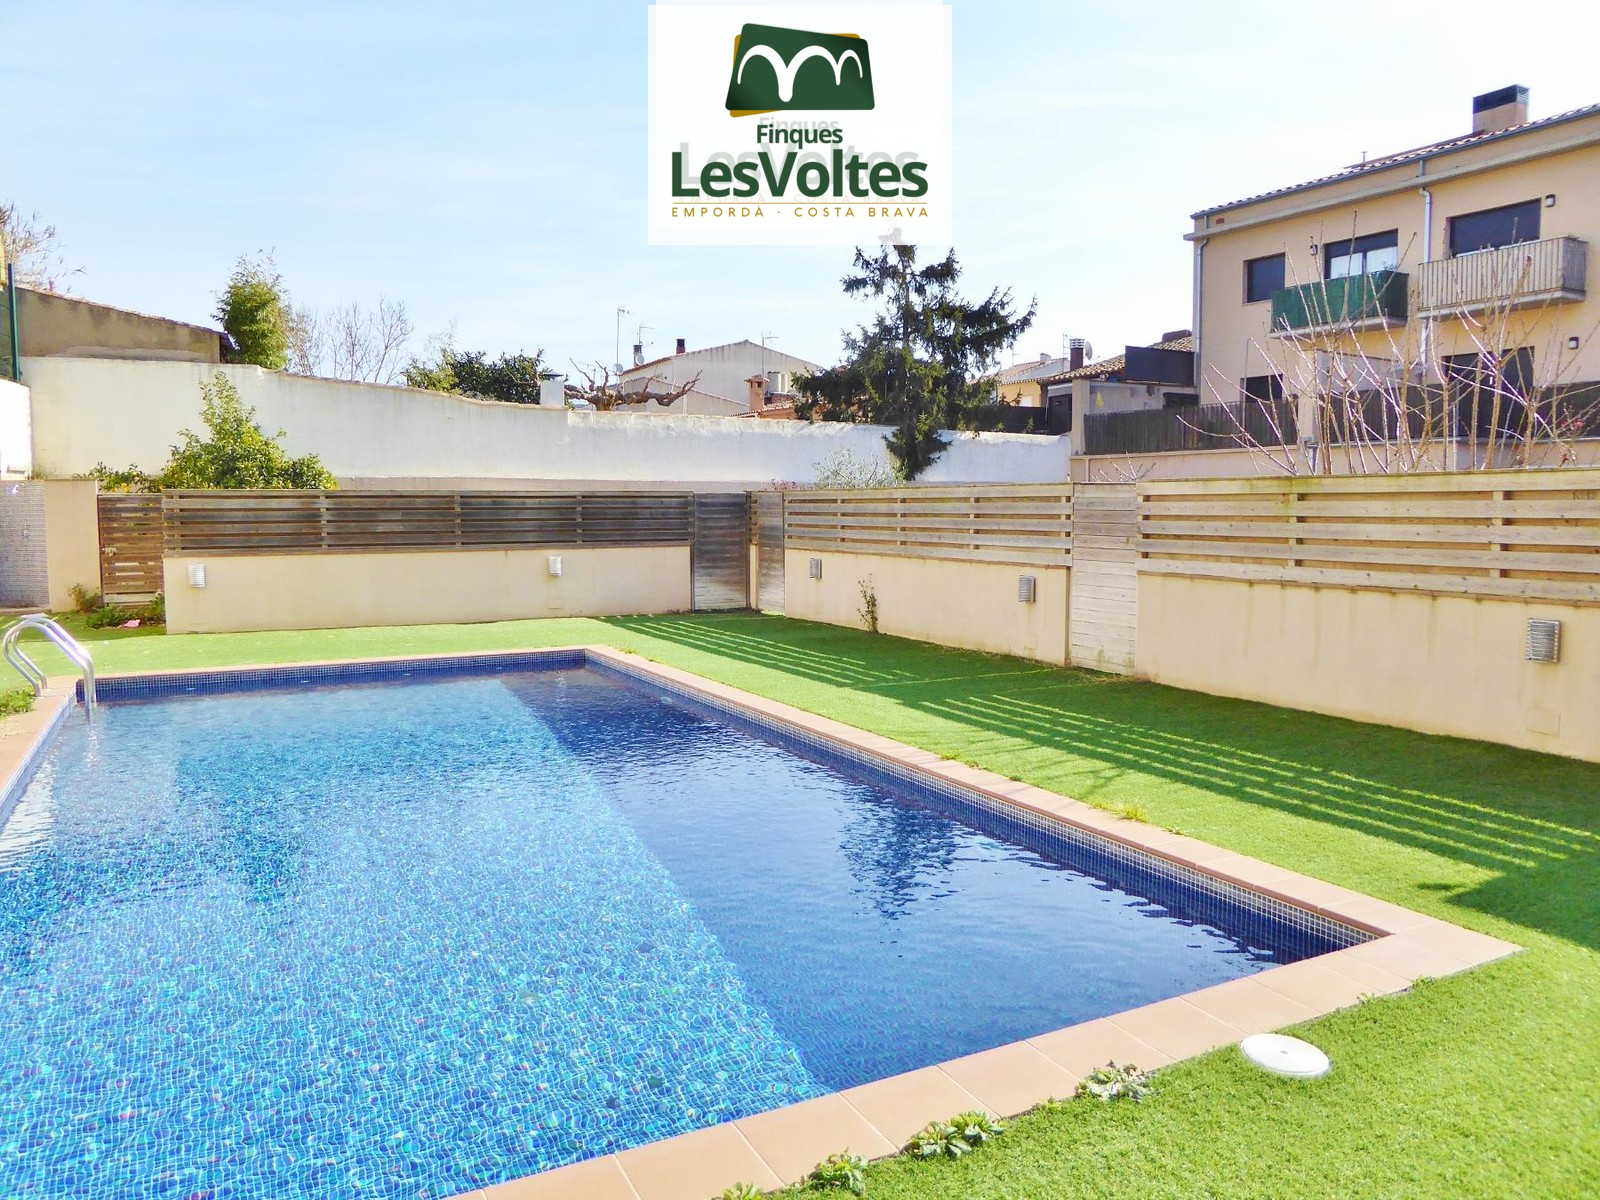 Apartment with parking space and storage room for sale in Palafrugell. Community with garden and pool.